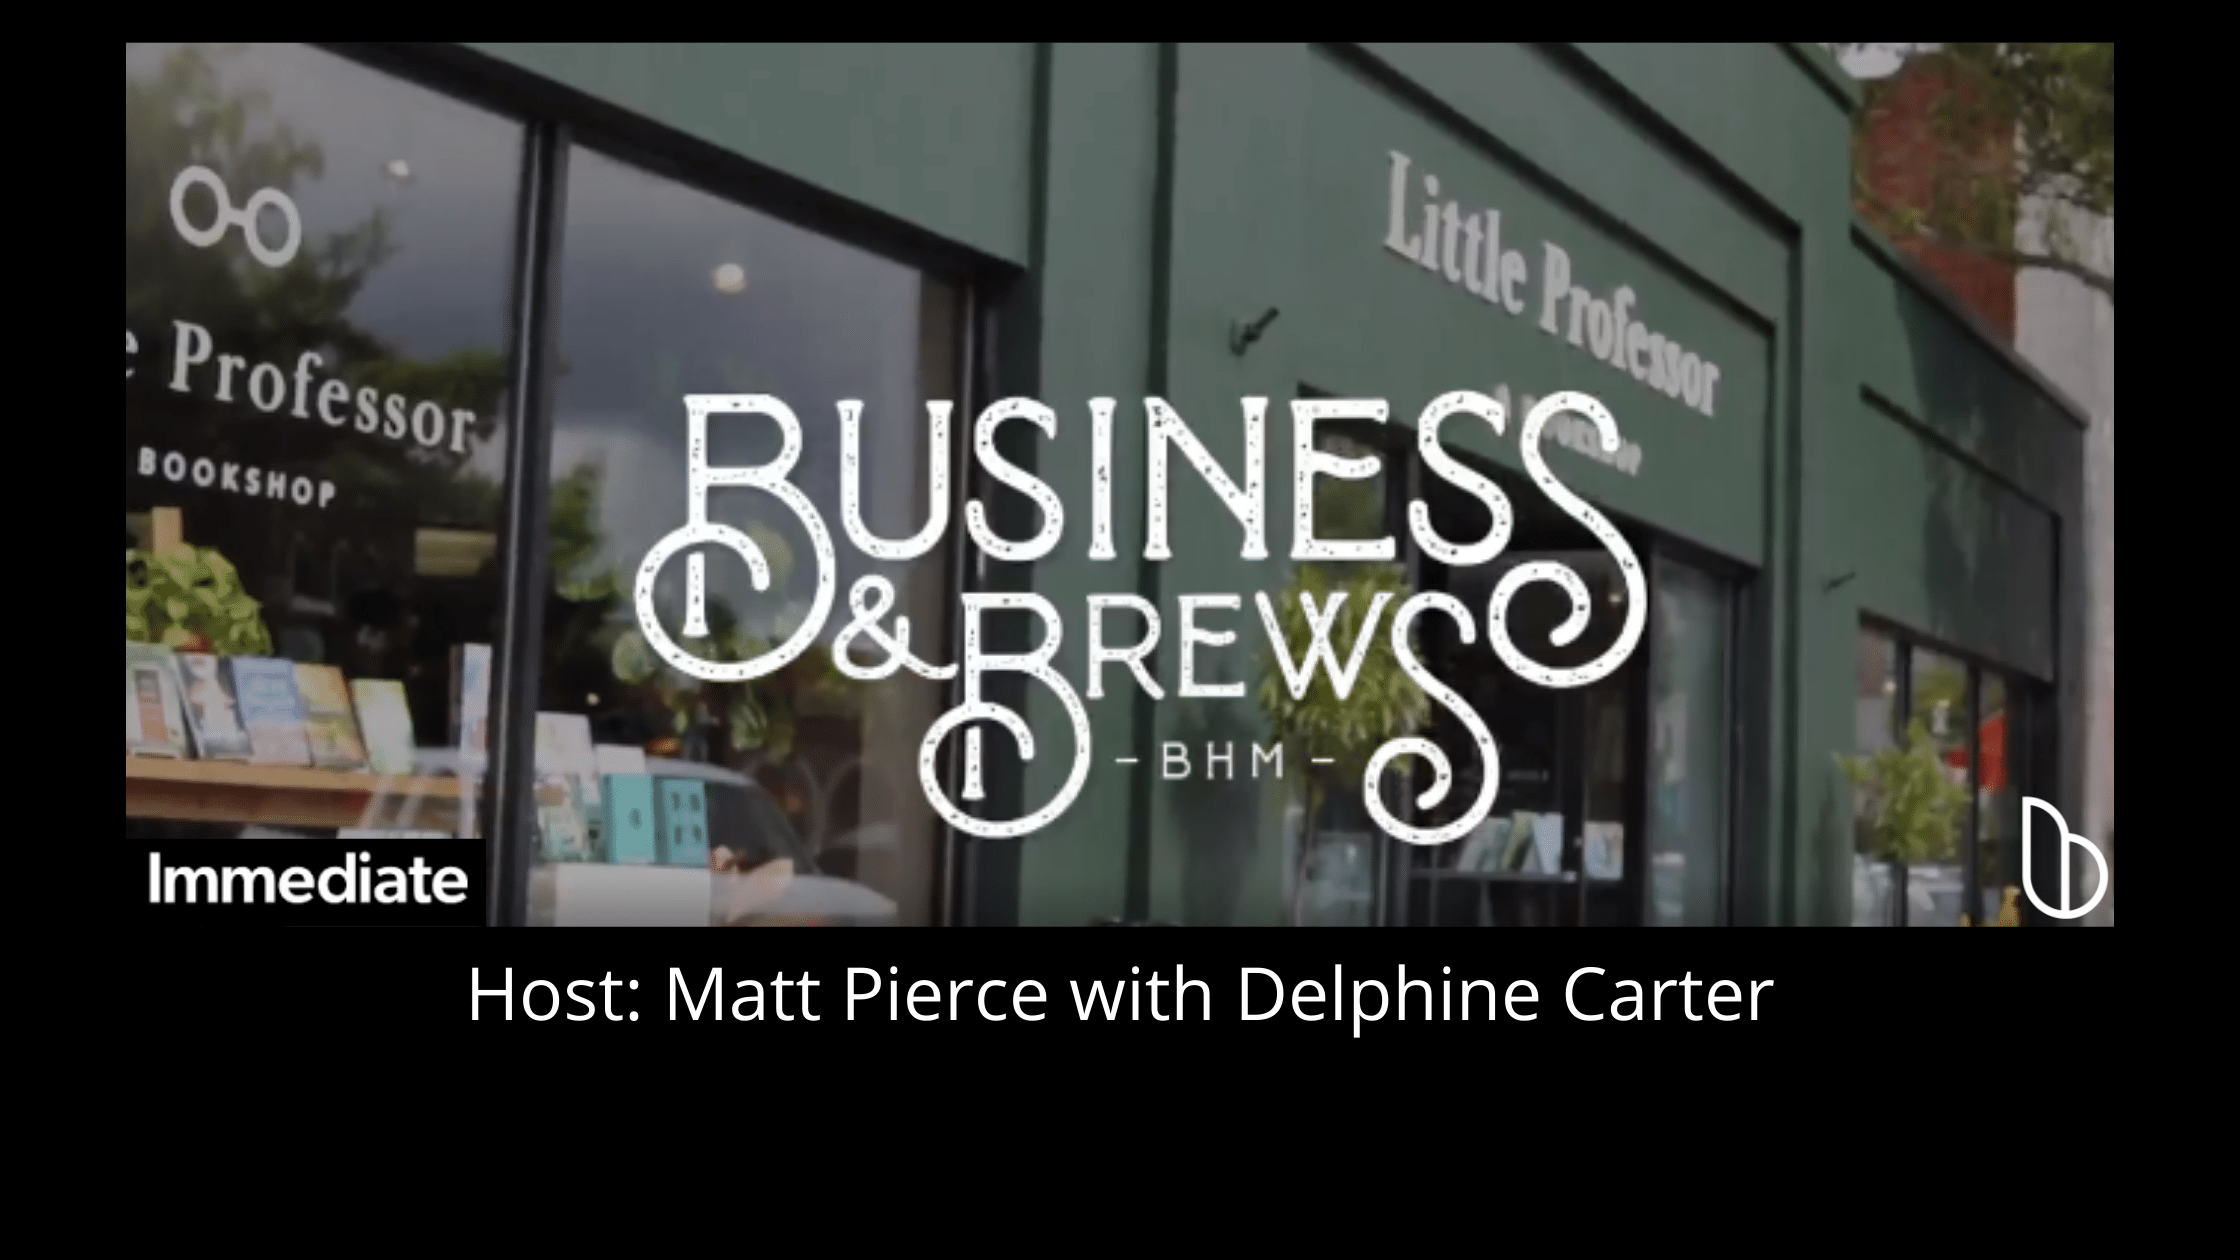 Scrappy Startup Advice on Business & Brews Podcast Matt Pierce Delphine Carter in front of picture of Little Professor Bookstore